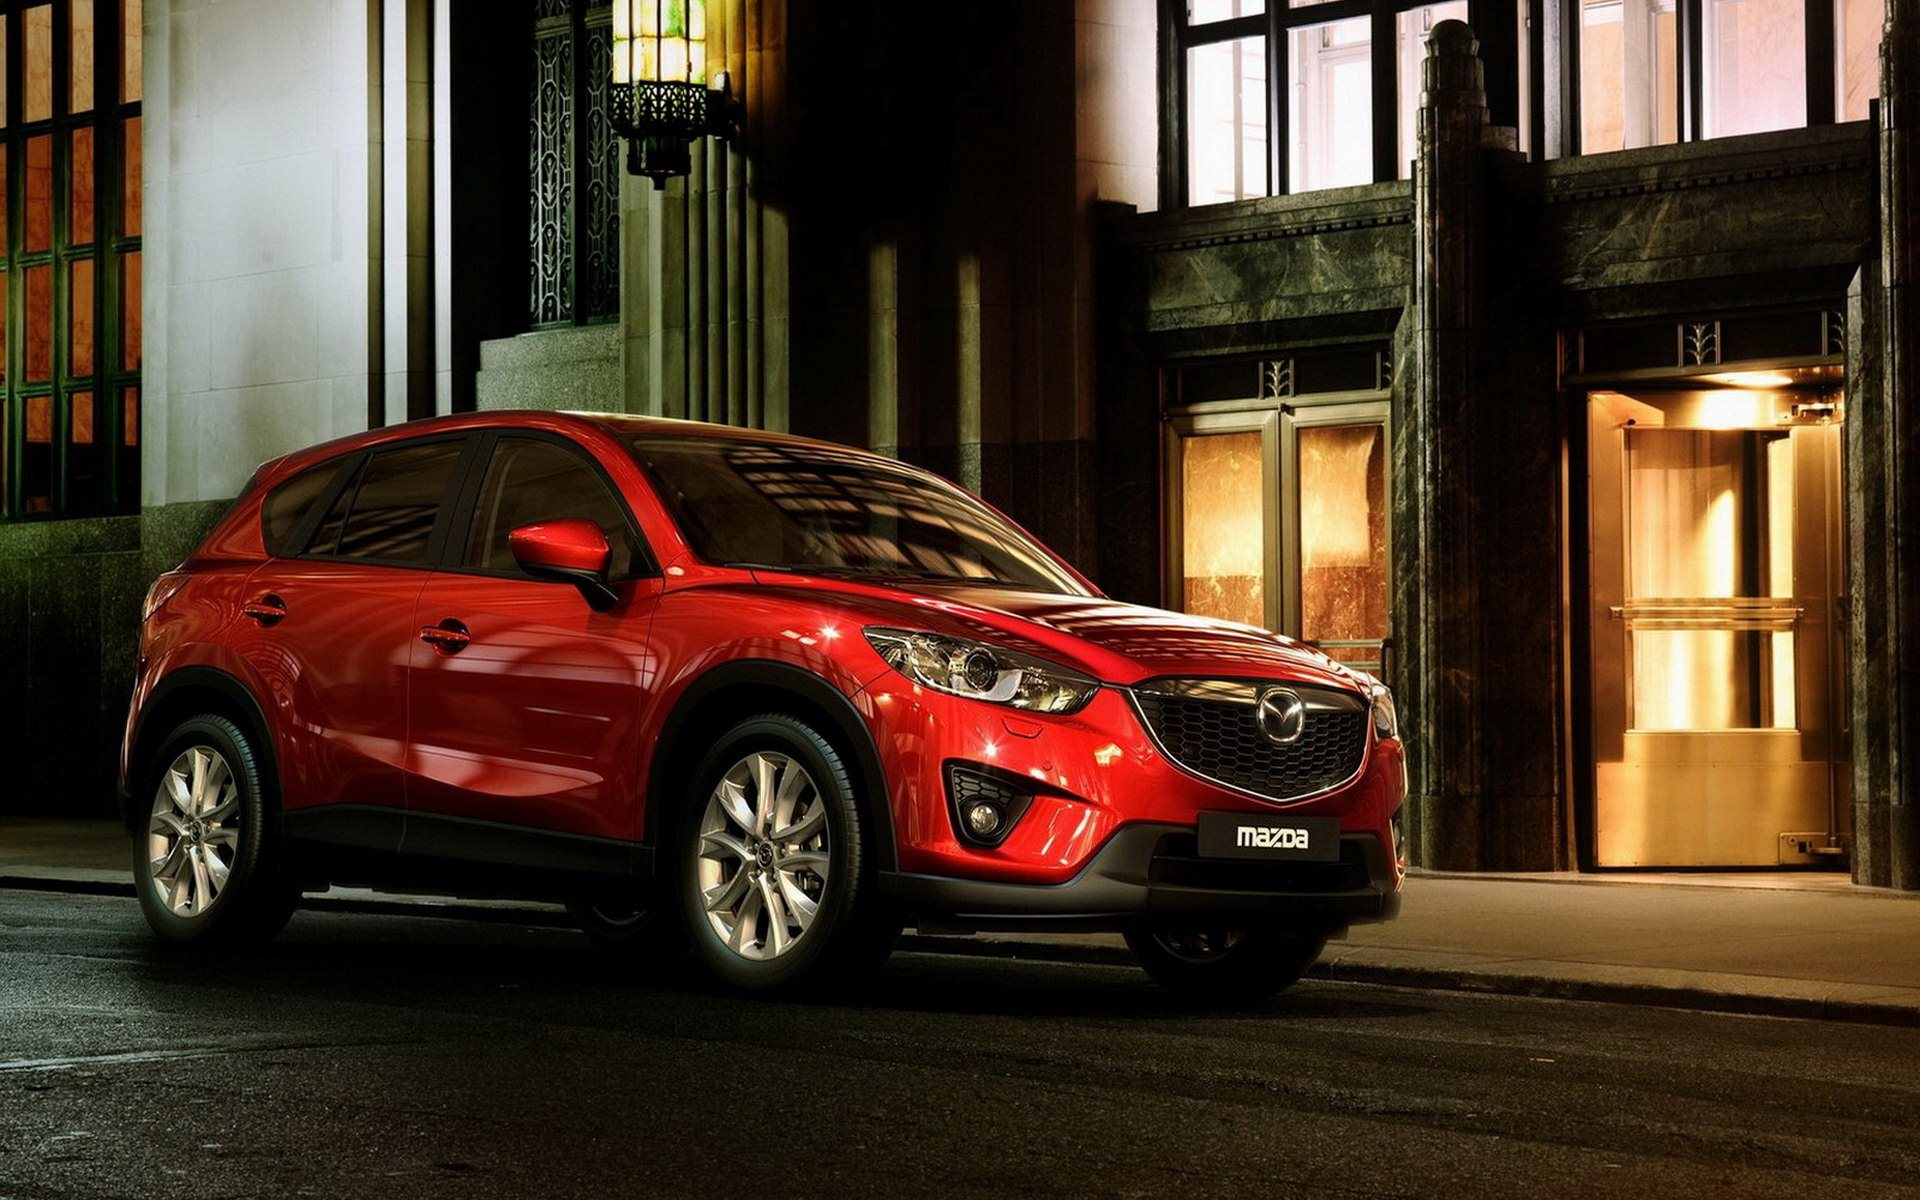 mazda cx-5 wallpaper background